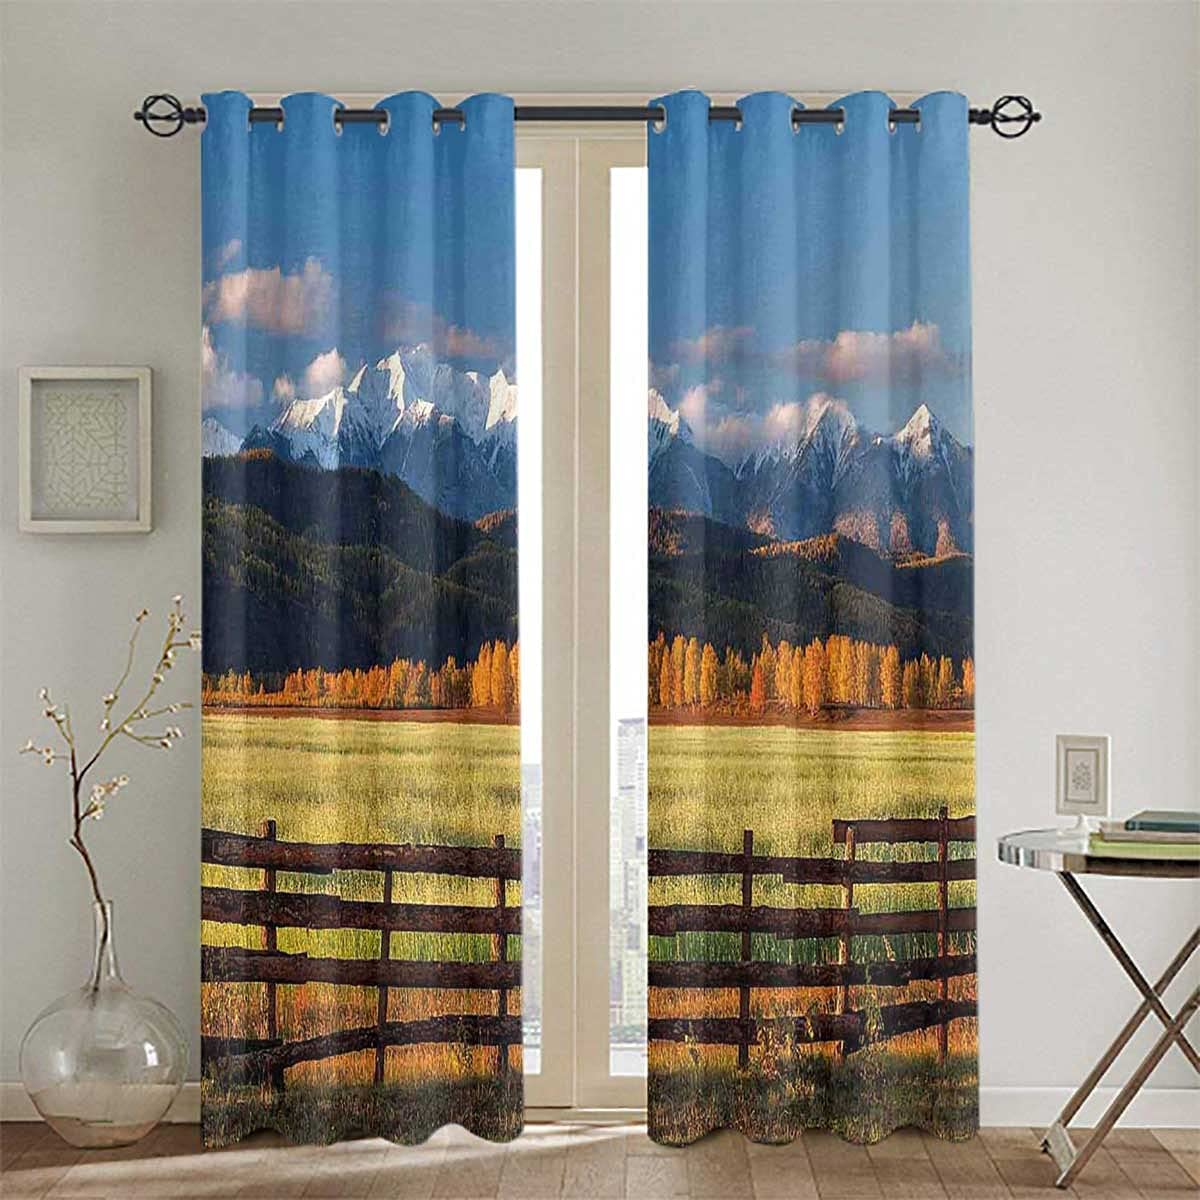 excellence Grommet Top Darkening Curtains for Room For San Diego Mall Living Nature Valley